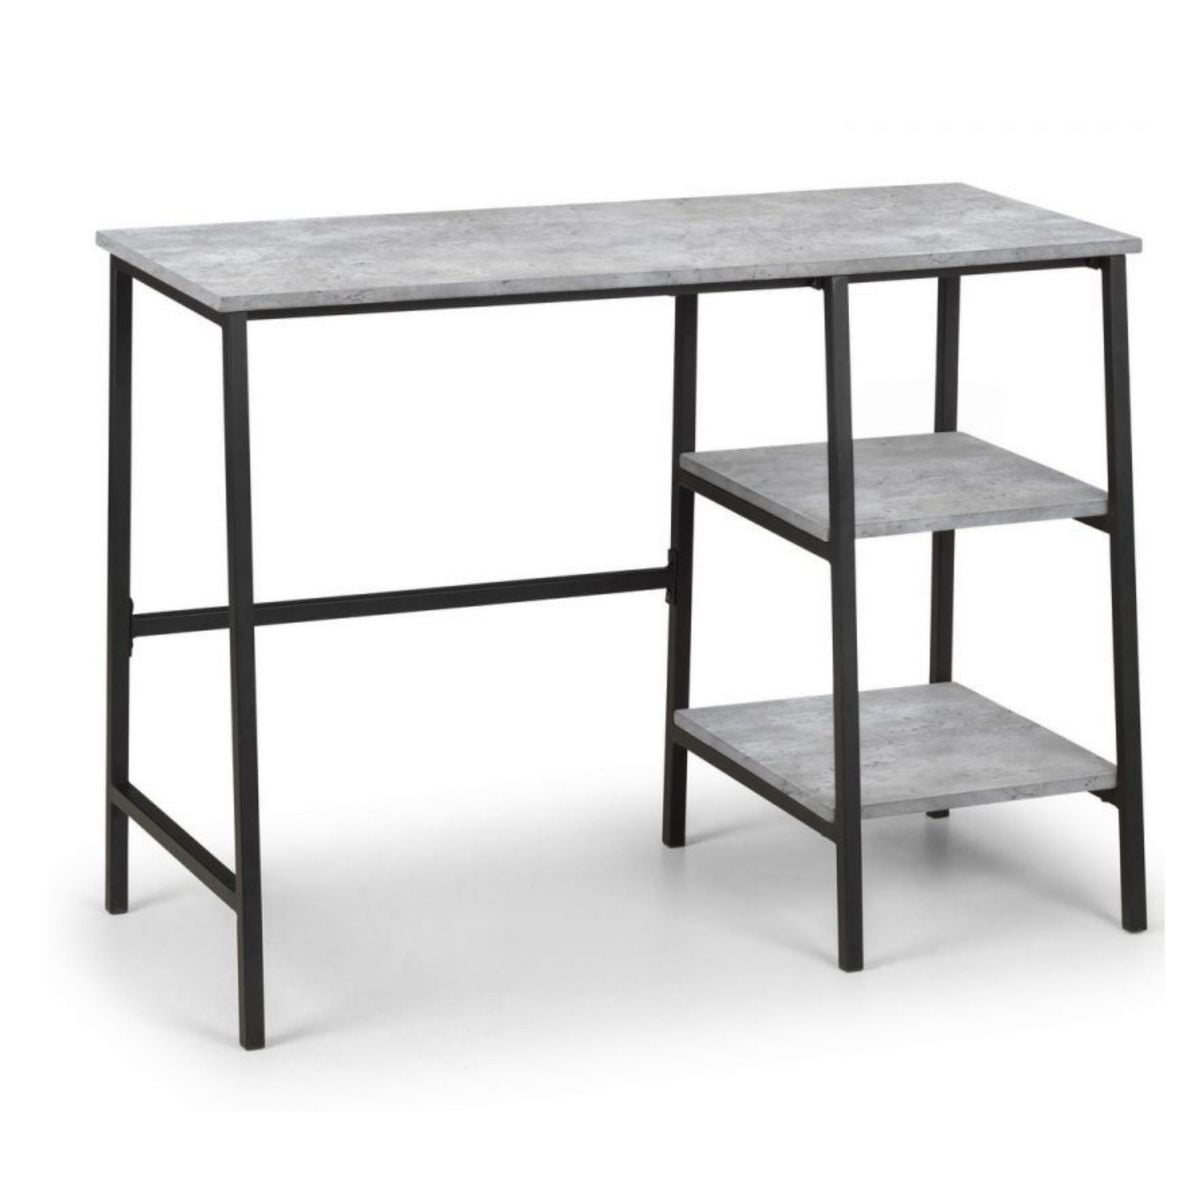 Shay Concrete-Effect Office Desk